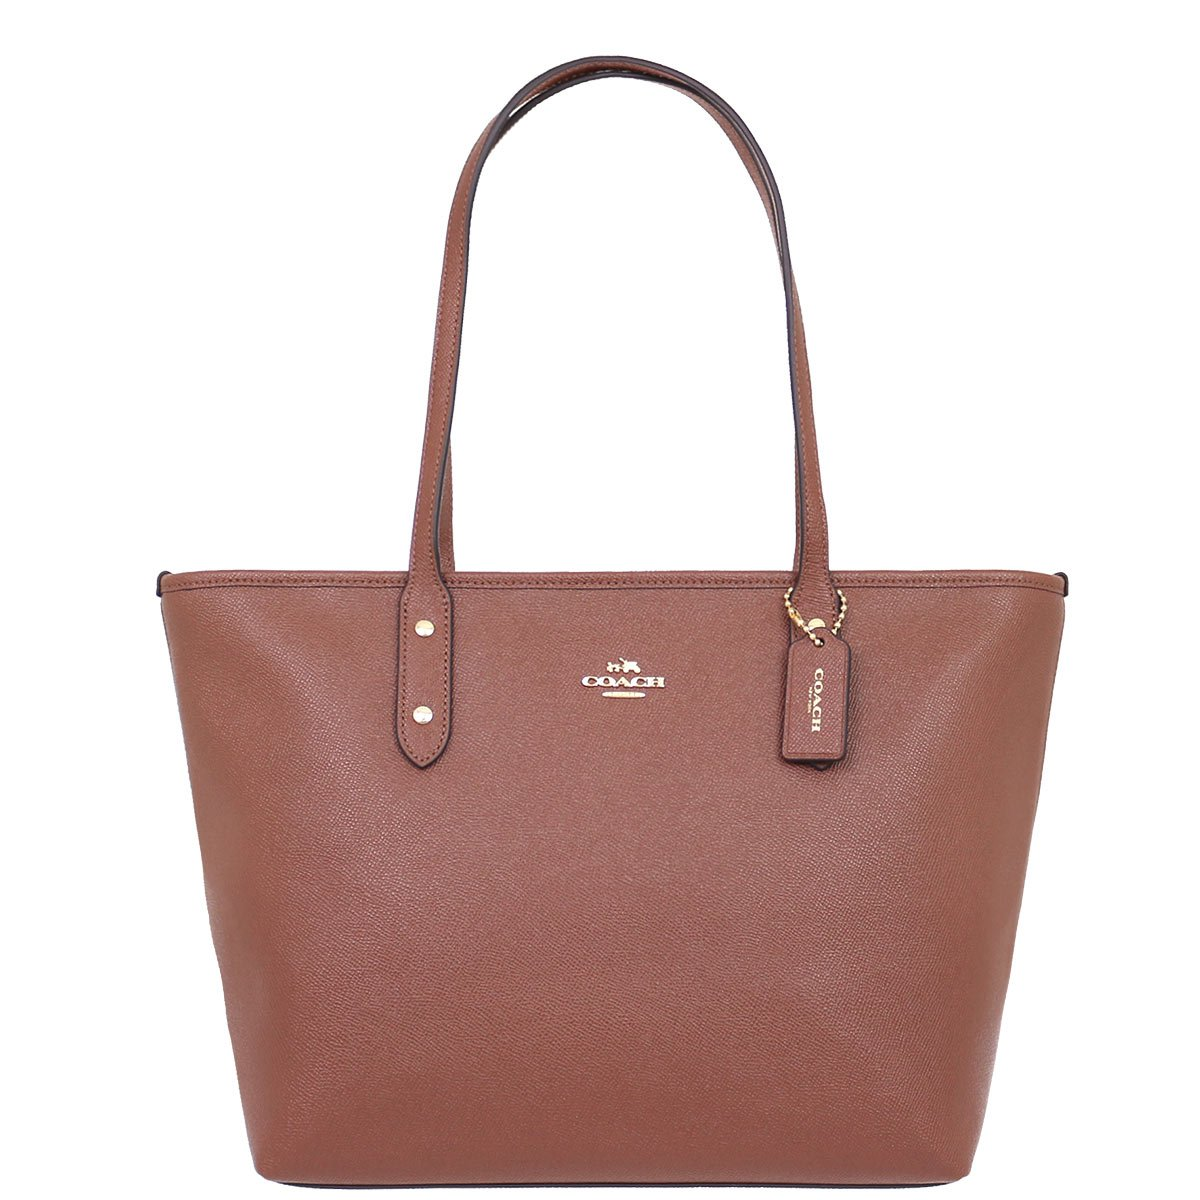 Coach Bag (Tote Bag) F58846 Leather Tote Bag Women's [Outlet Item] [Parallel Import Goods] (Saddle 2)